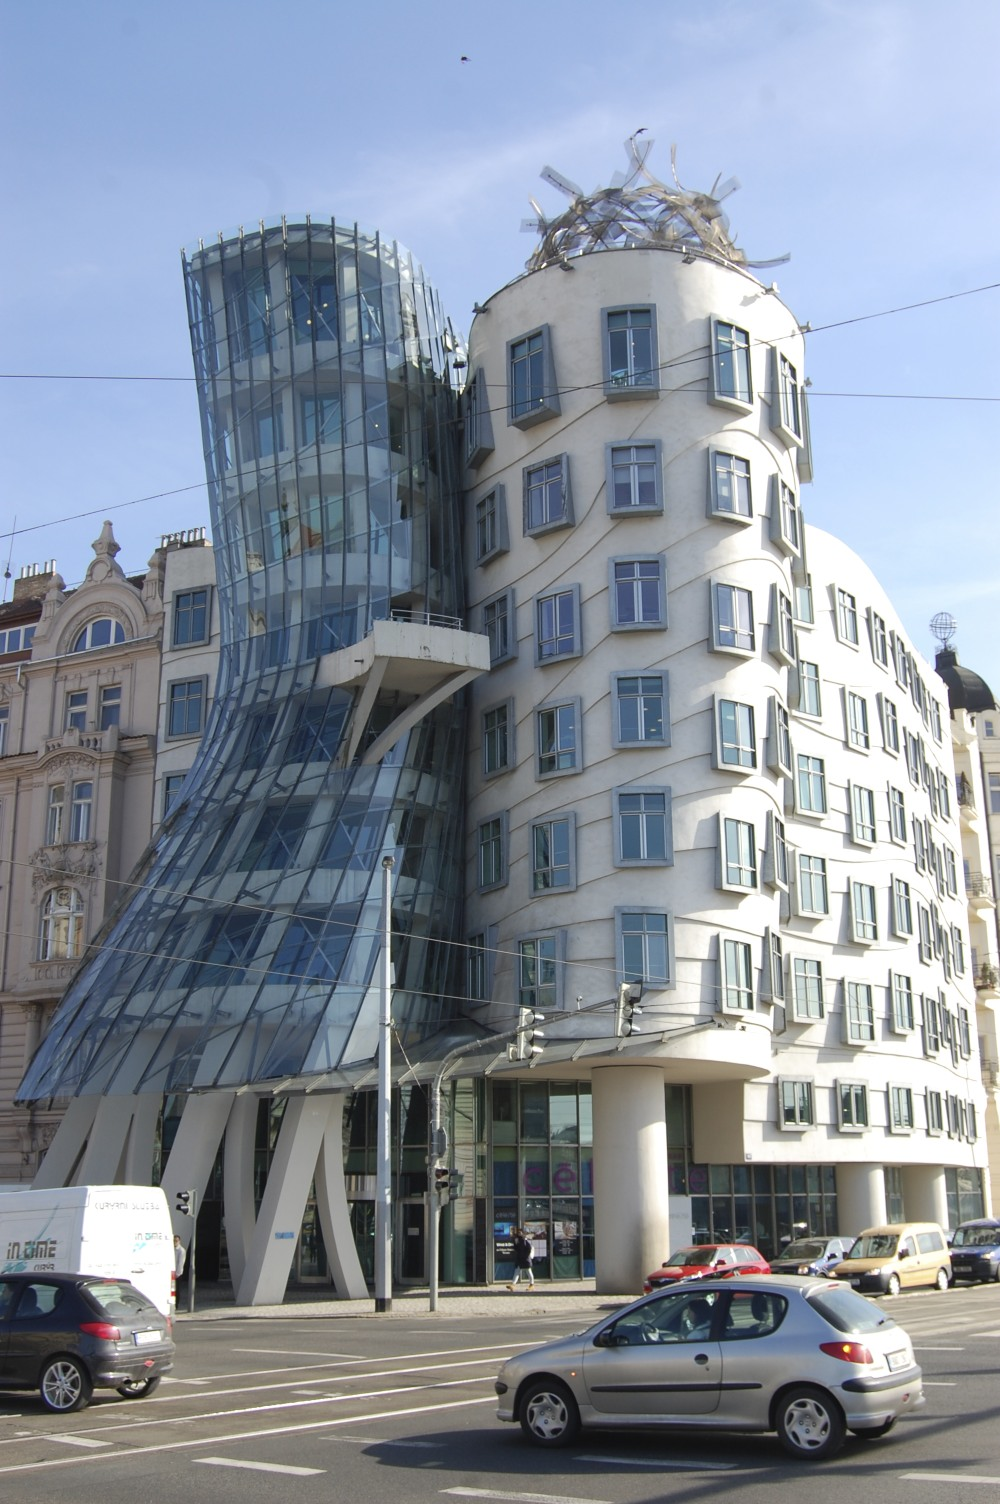 Dancing House, Frank Gehry,